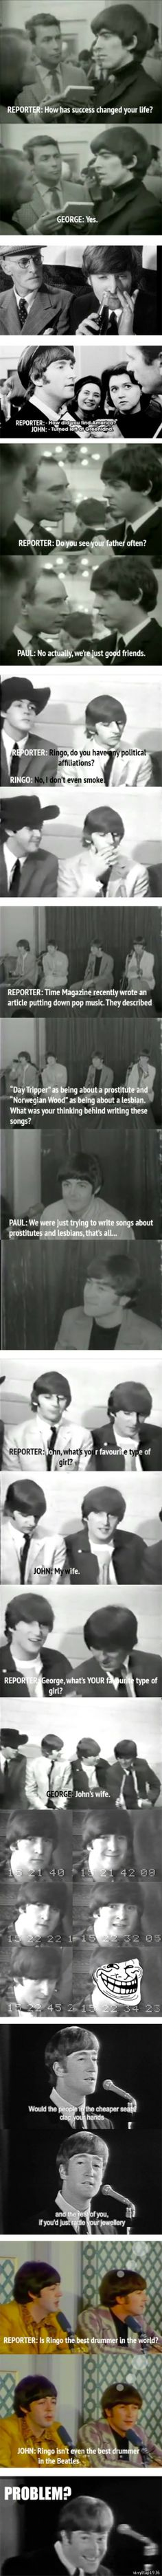 I do t like The Beatles but this is amusing if its true